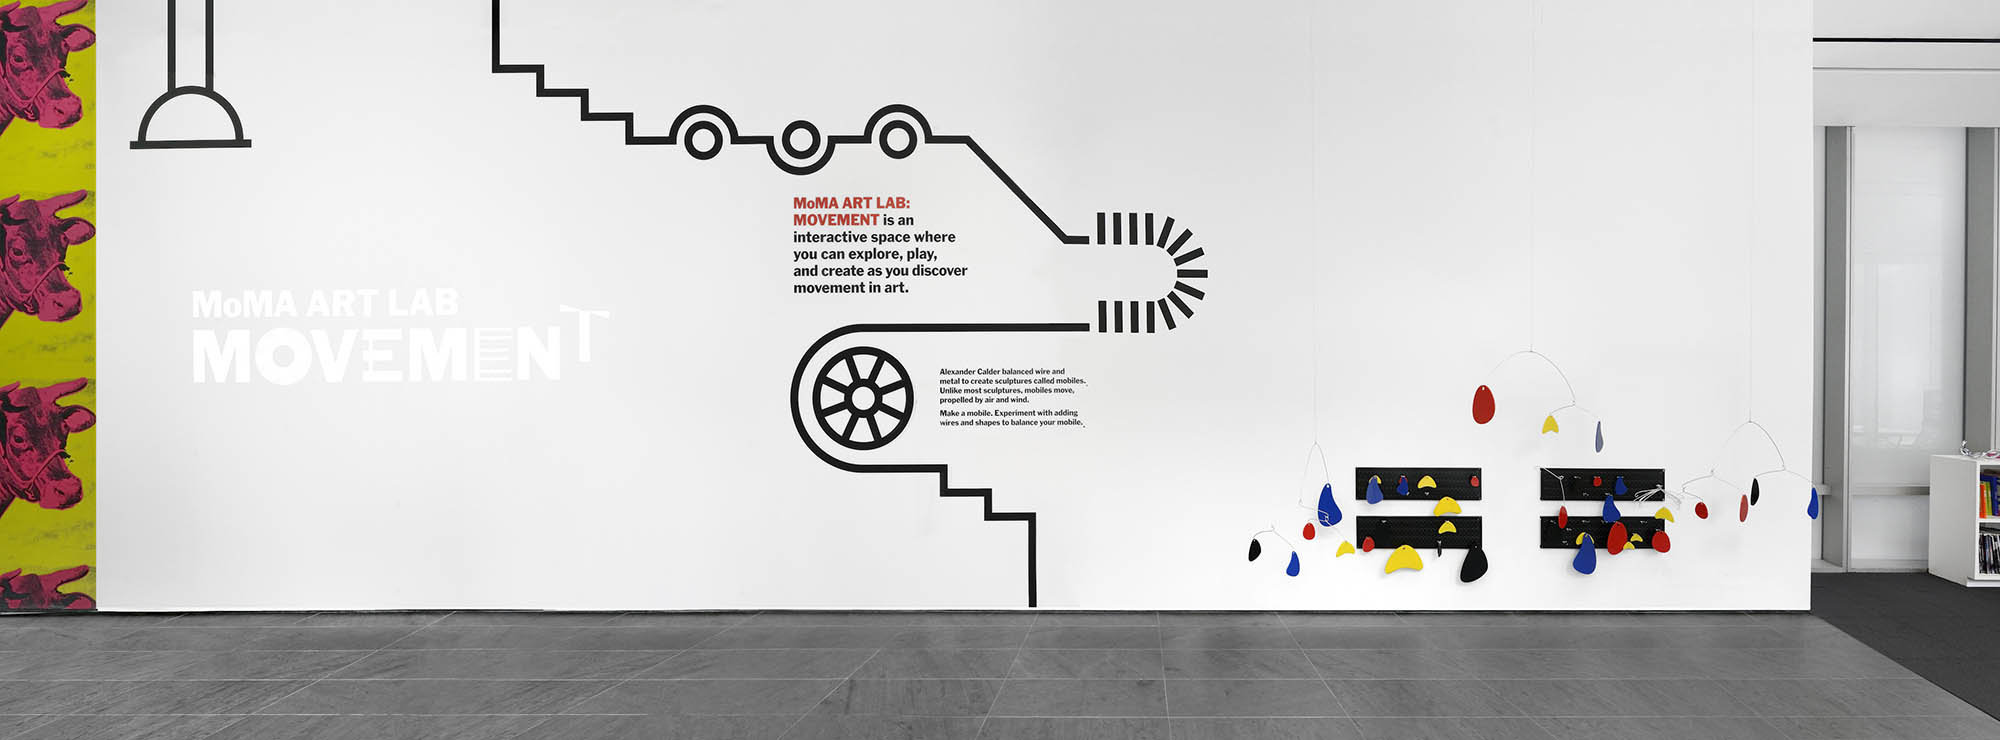 Panoramic shot of MoMA Art Lab, which includes a Calder mobile activity